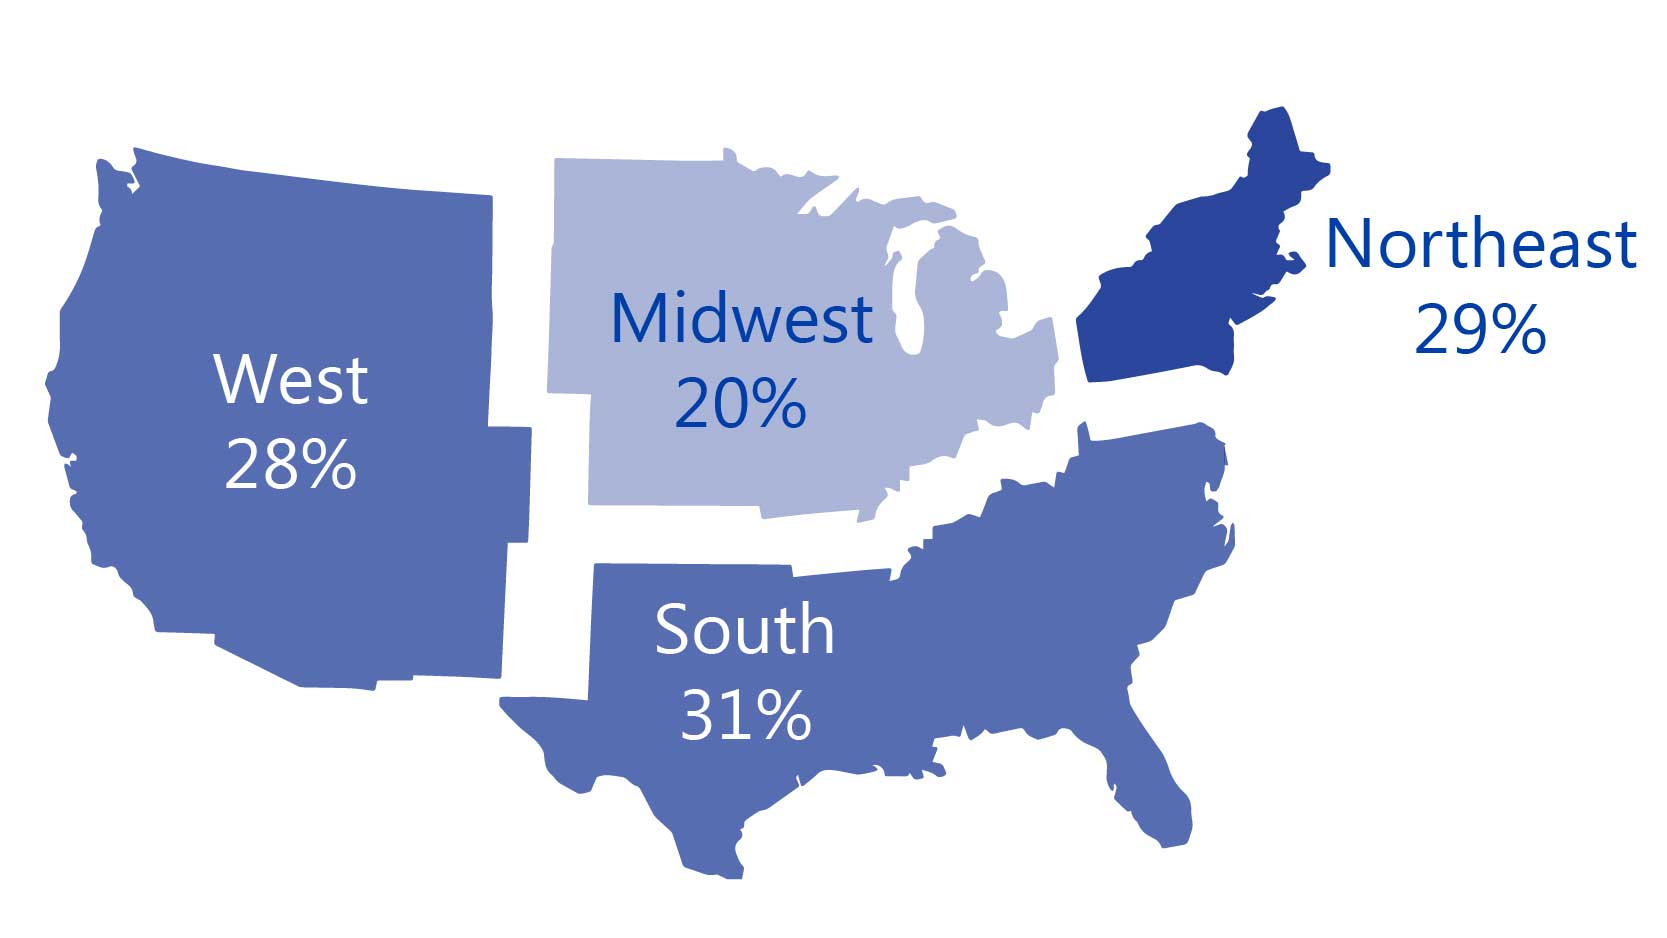 U.S. small businesses planning spend increase (by region): the South at 31% planning to increase spend, NE at 29%, the West at 28% and Midwest at 20%.